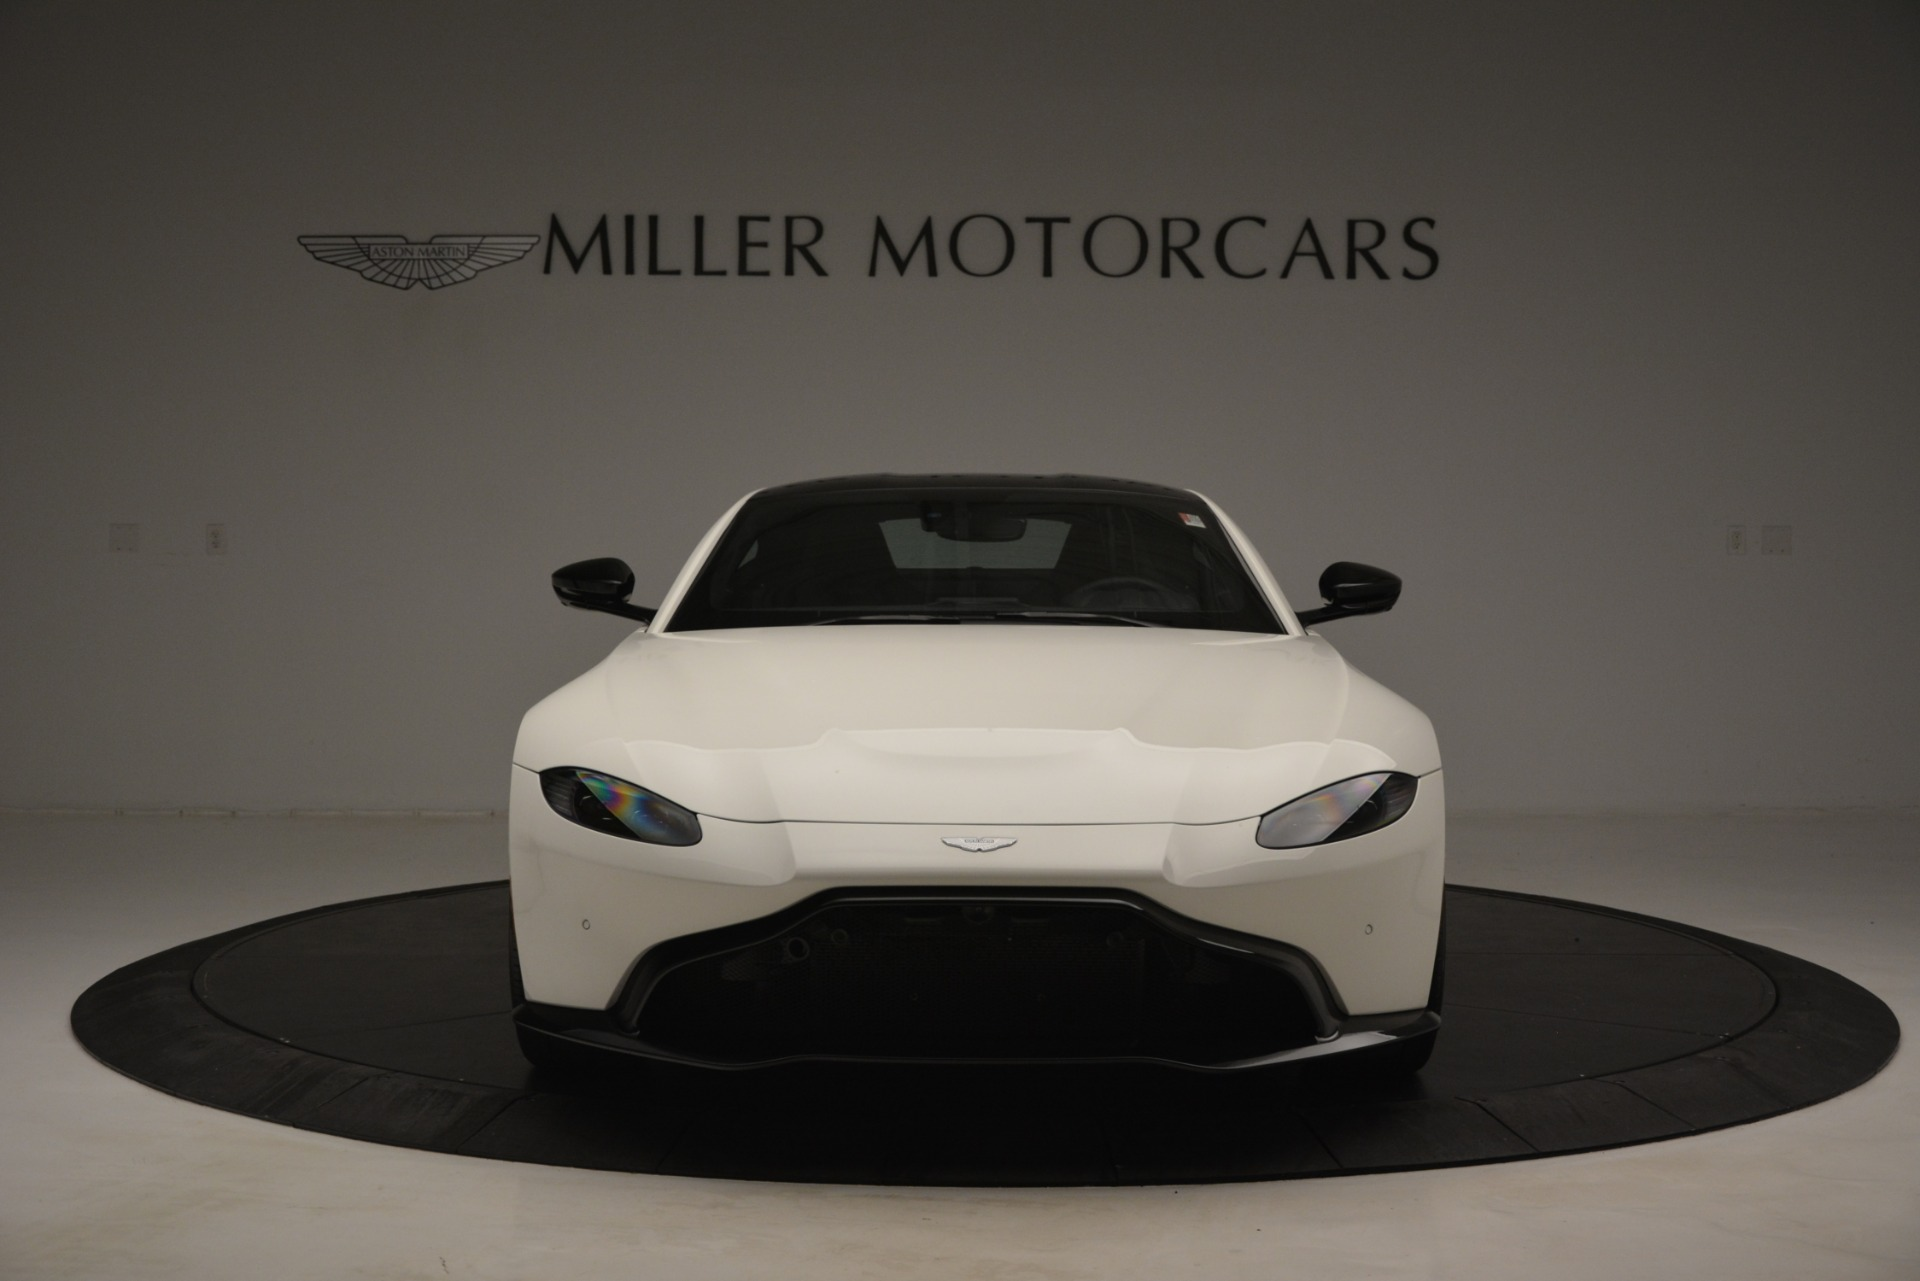 New 2019 Aston Martin Vantage V8 For Sale In Westport, CT 3053_p12